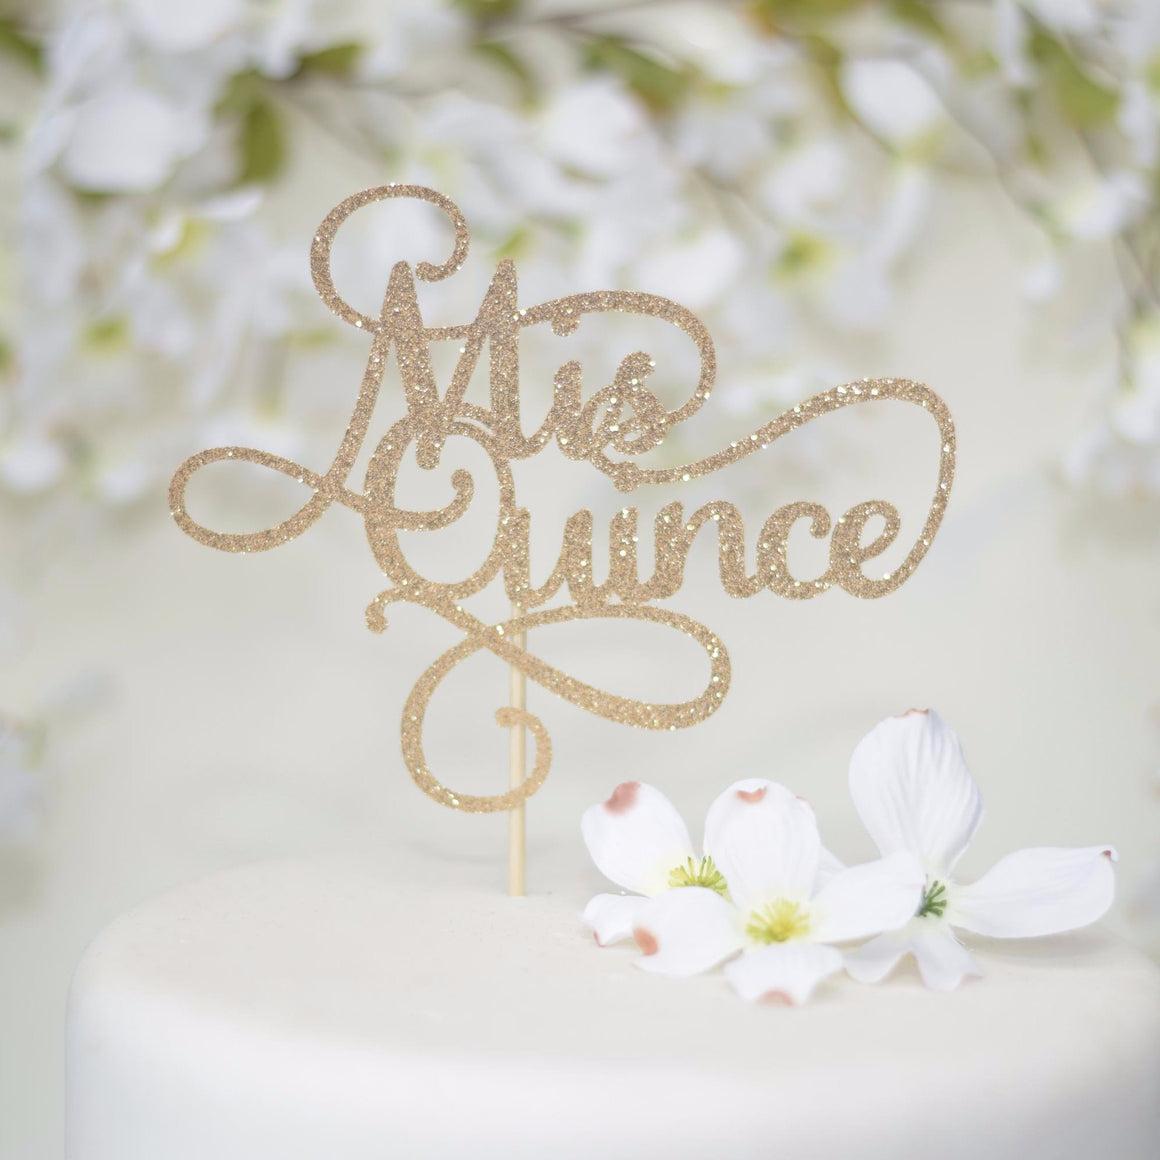 Mis Quince gold sparkle cake topper on white cake with white flowers